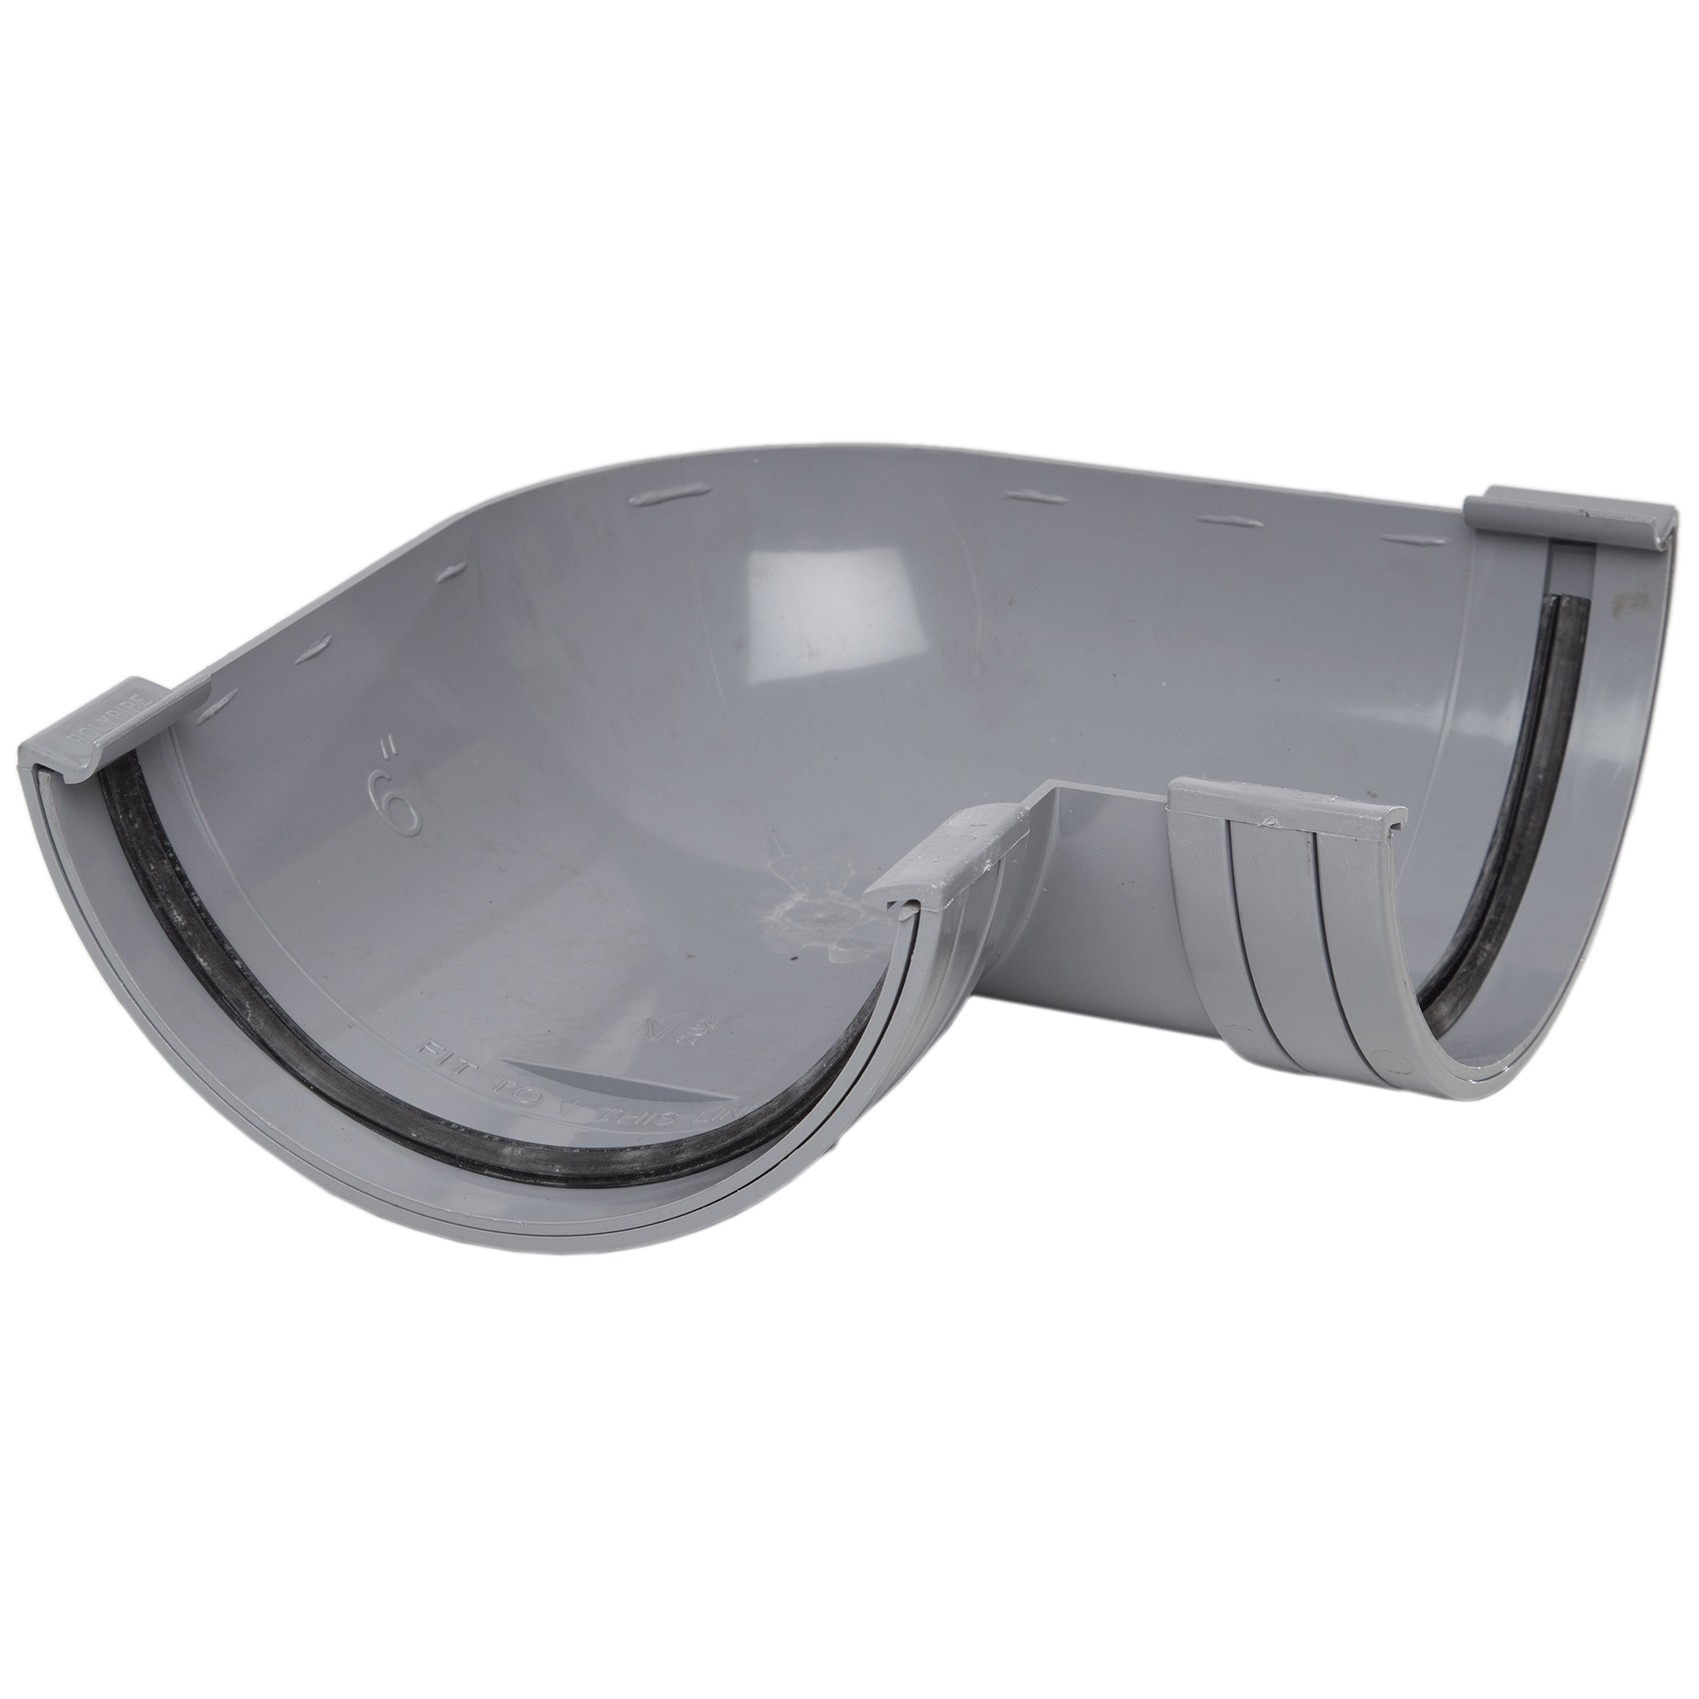 Polypipe 150mm Large Half Round Gutter 90 Degree Angle - Grey